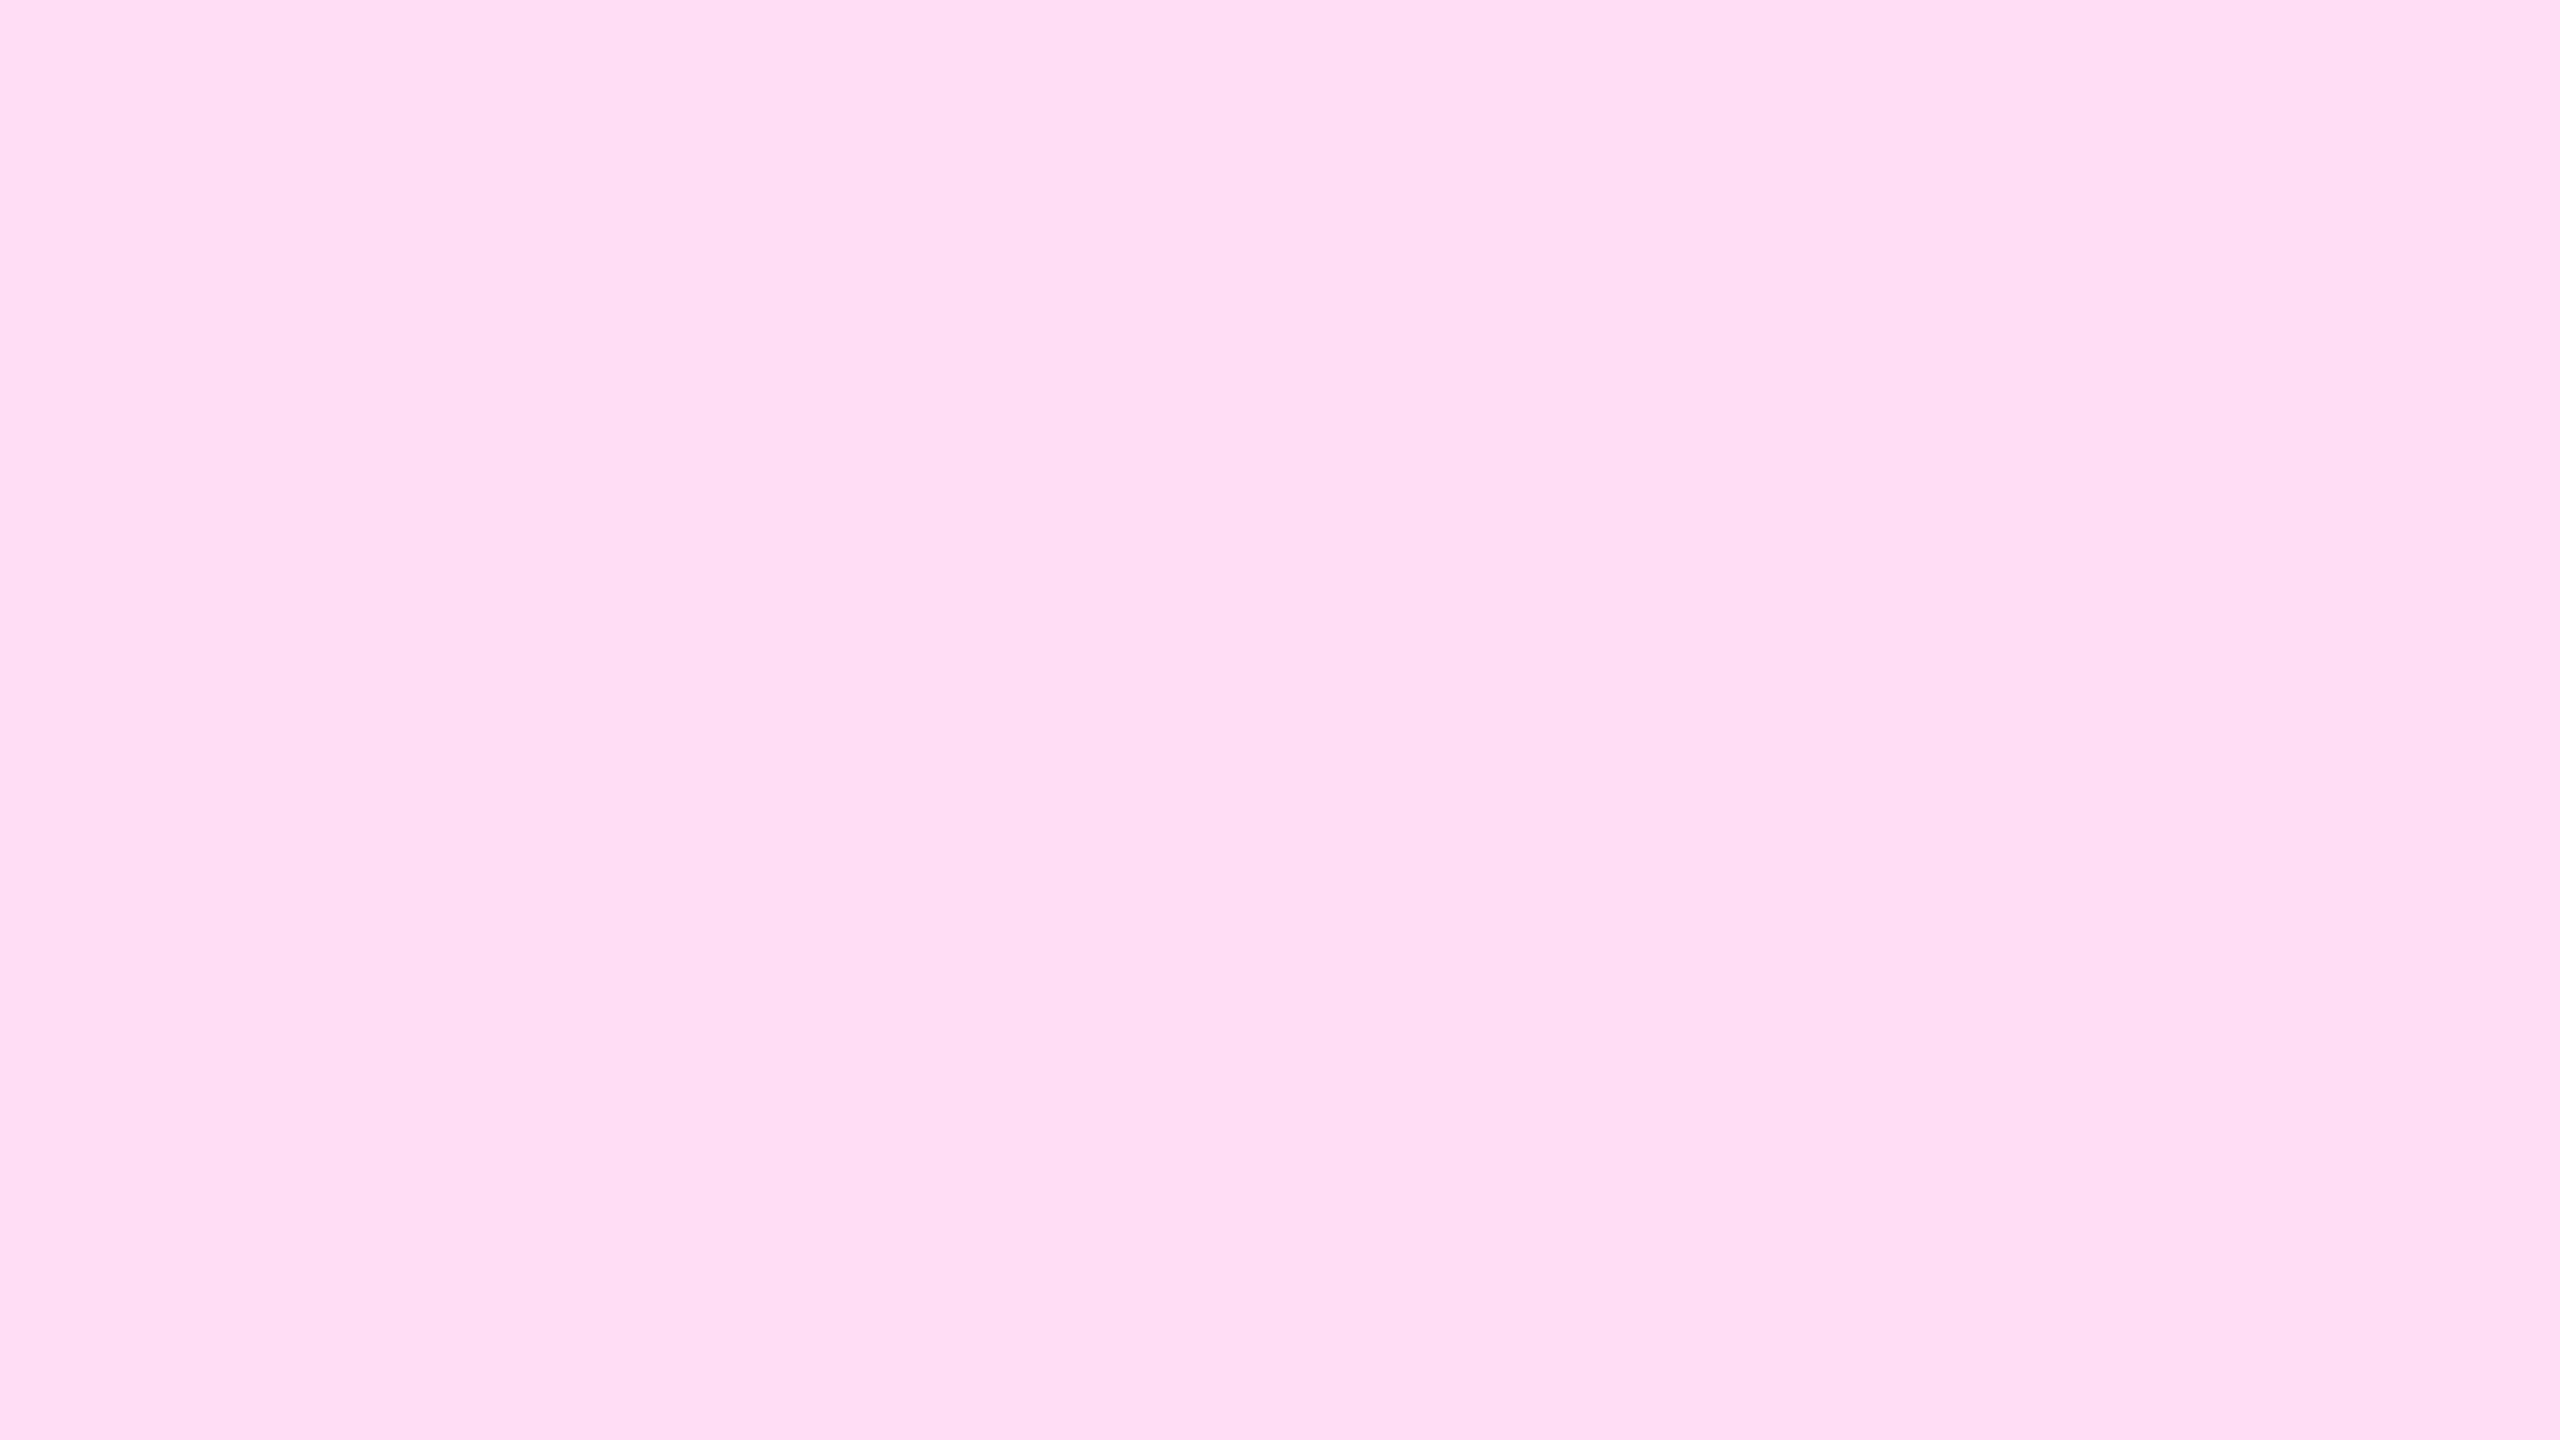 2560x1440 Pink Lace Solid Color Background